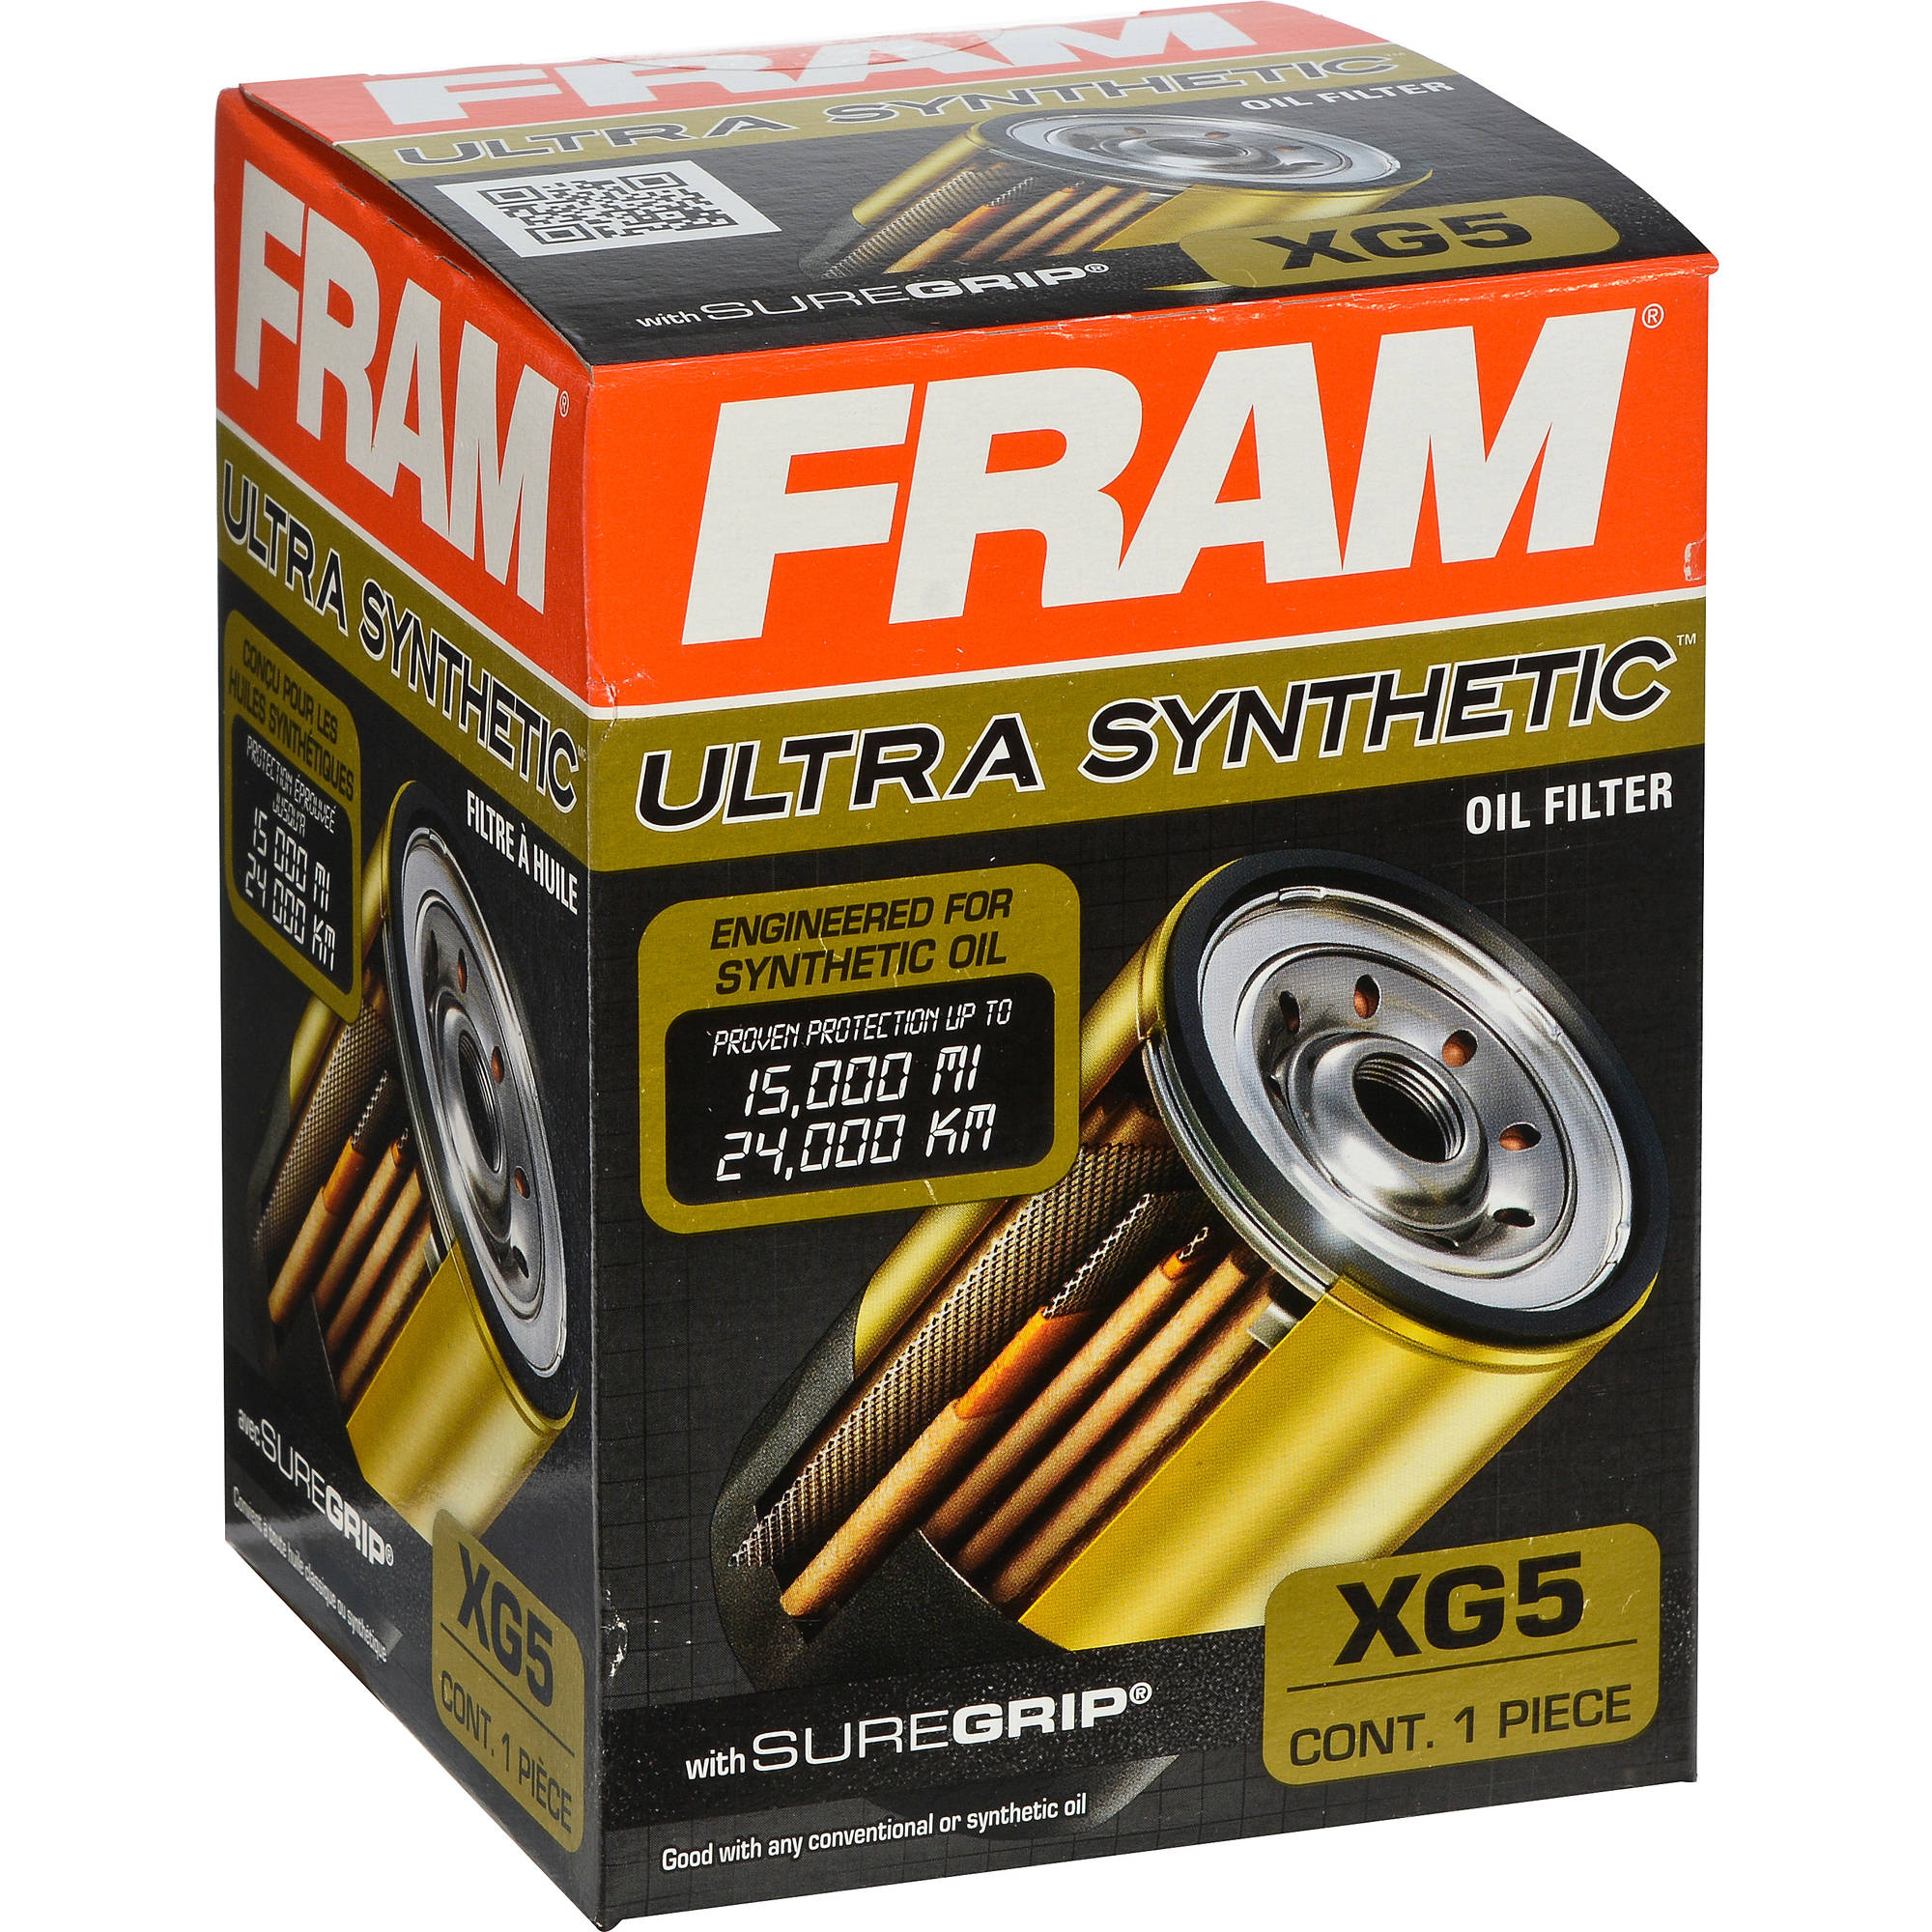 FRAM Ultra Synthetic Oil Filter, XG5